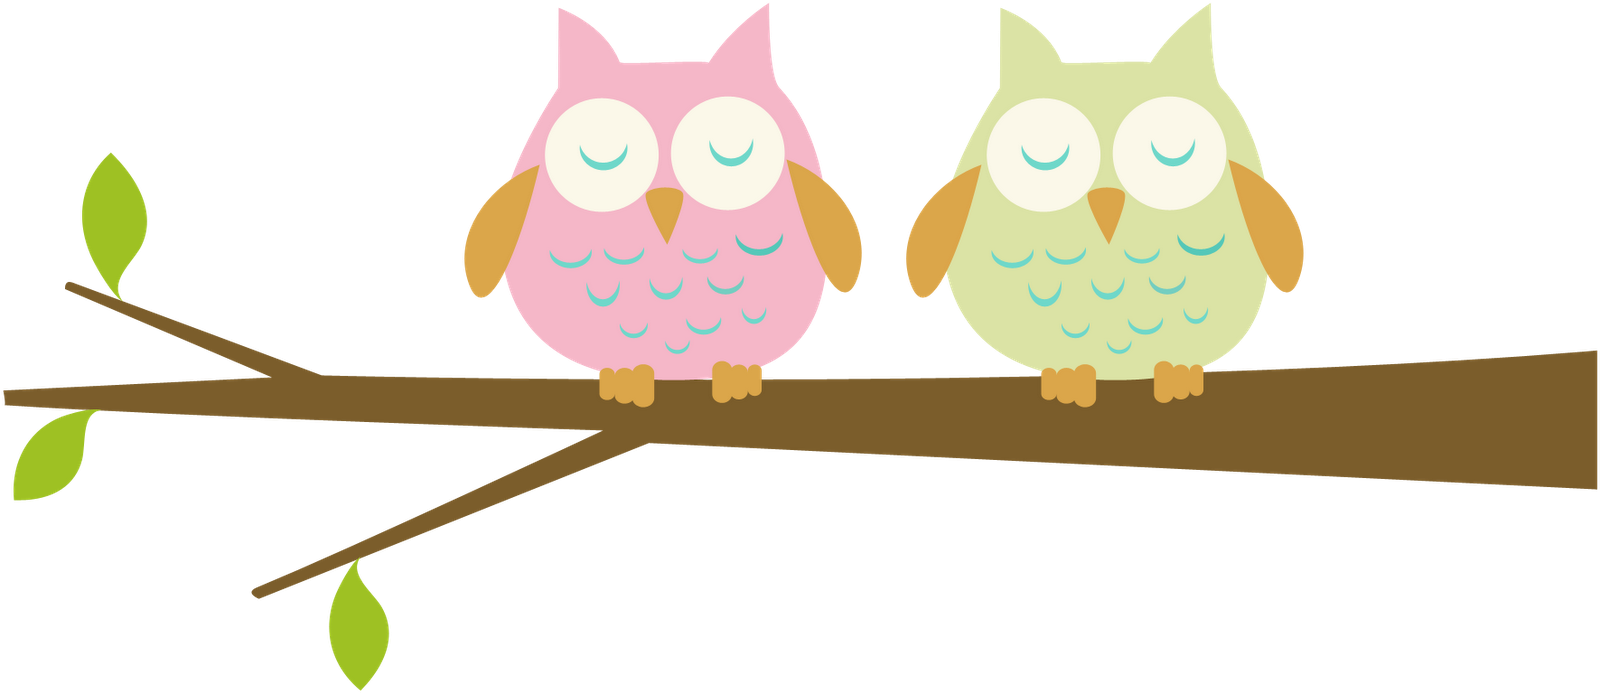 16 baby owl clip art free cliparts that you can download to you    Baby Owl Clipart Black And White